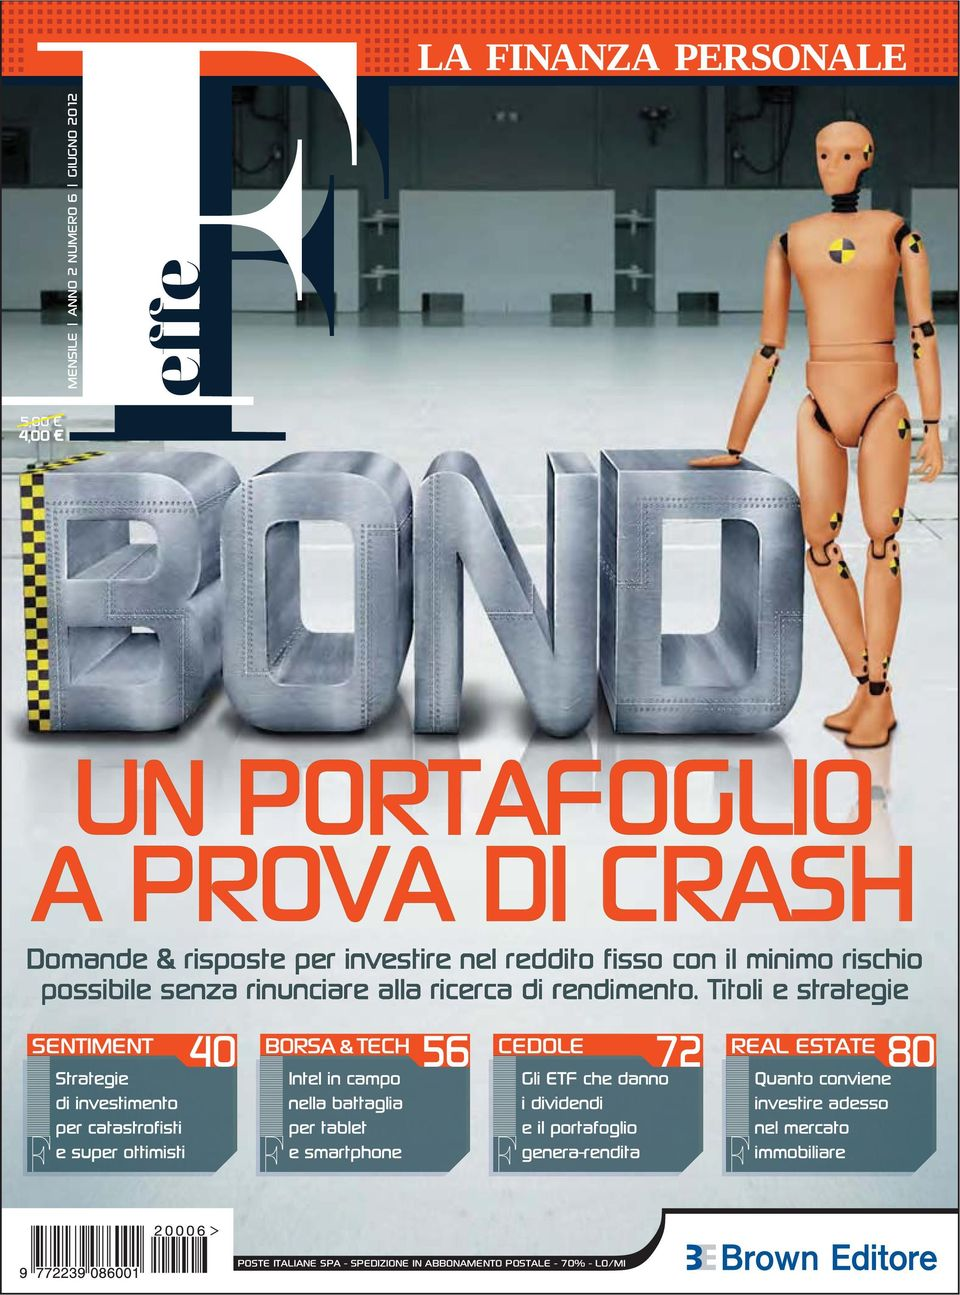 CRASH 40 56 72 80 POSTE ITALIANE SPA -